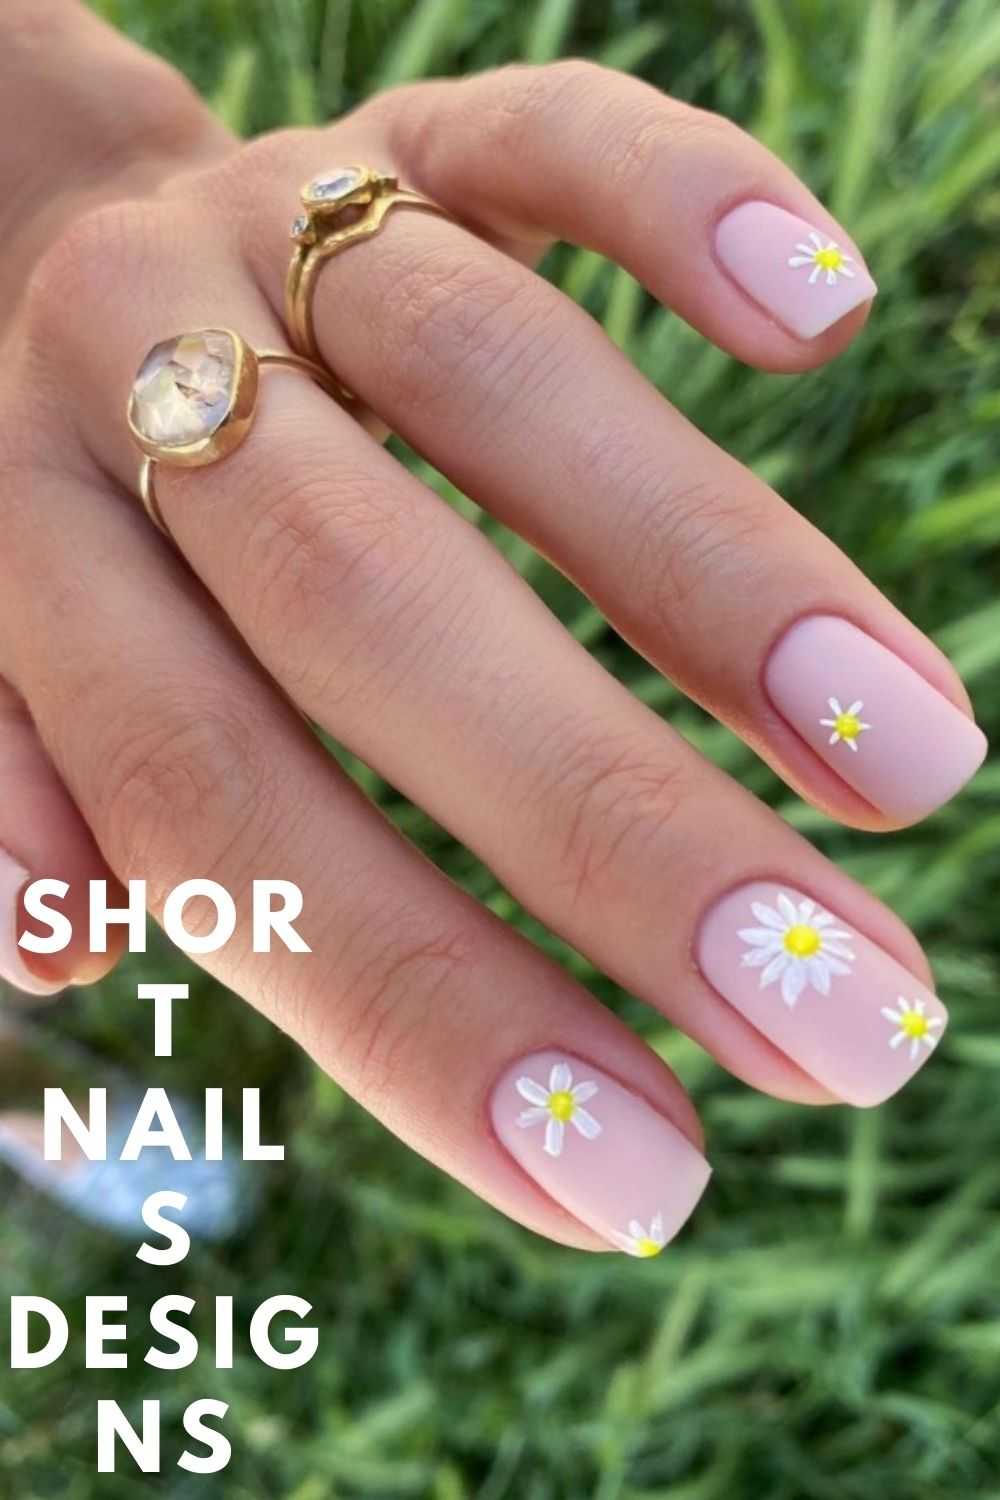 Pink short nail designs with flowers